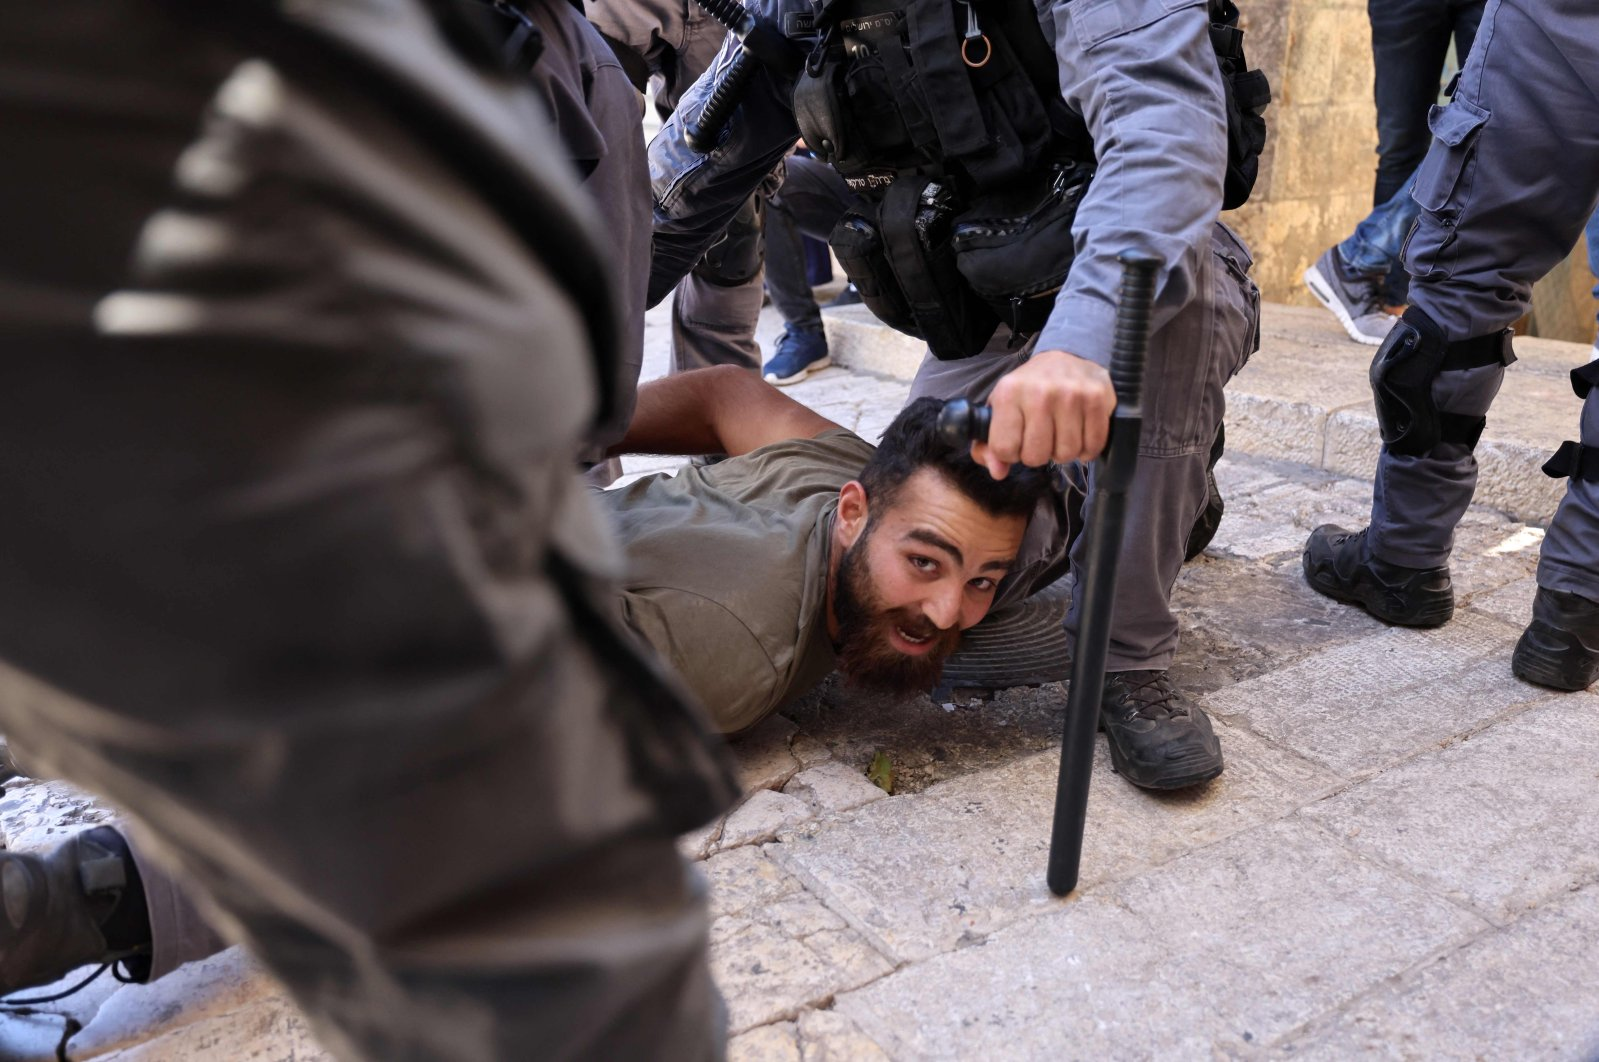 Israeli border police detain a Palestinian man during protests against Israel's occupation and its air campaign on the Gaza strip, at Damascus Gate in East Jerusalem, occupied Palestine, on May 18, 2021. (AFP Photo)